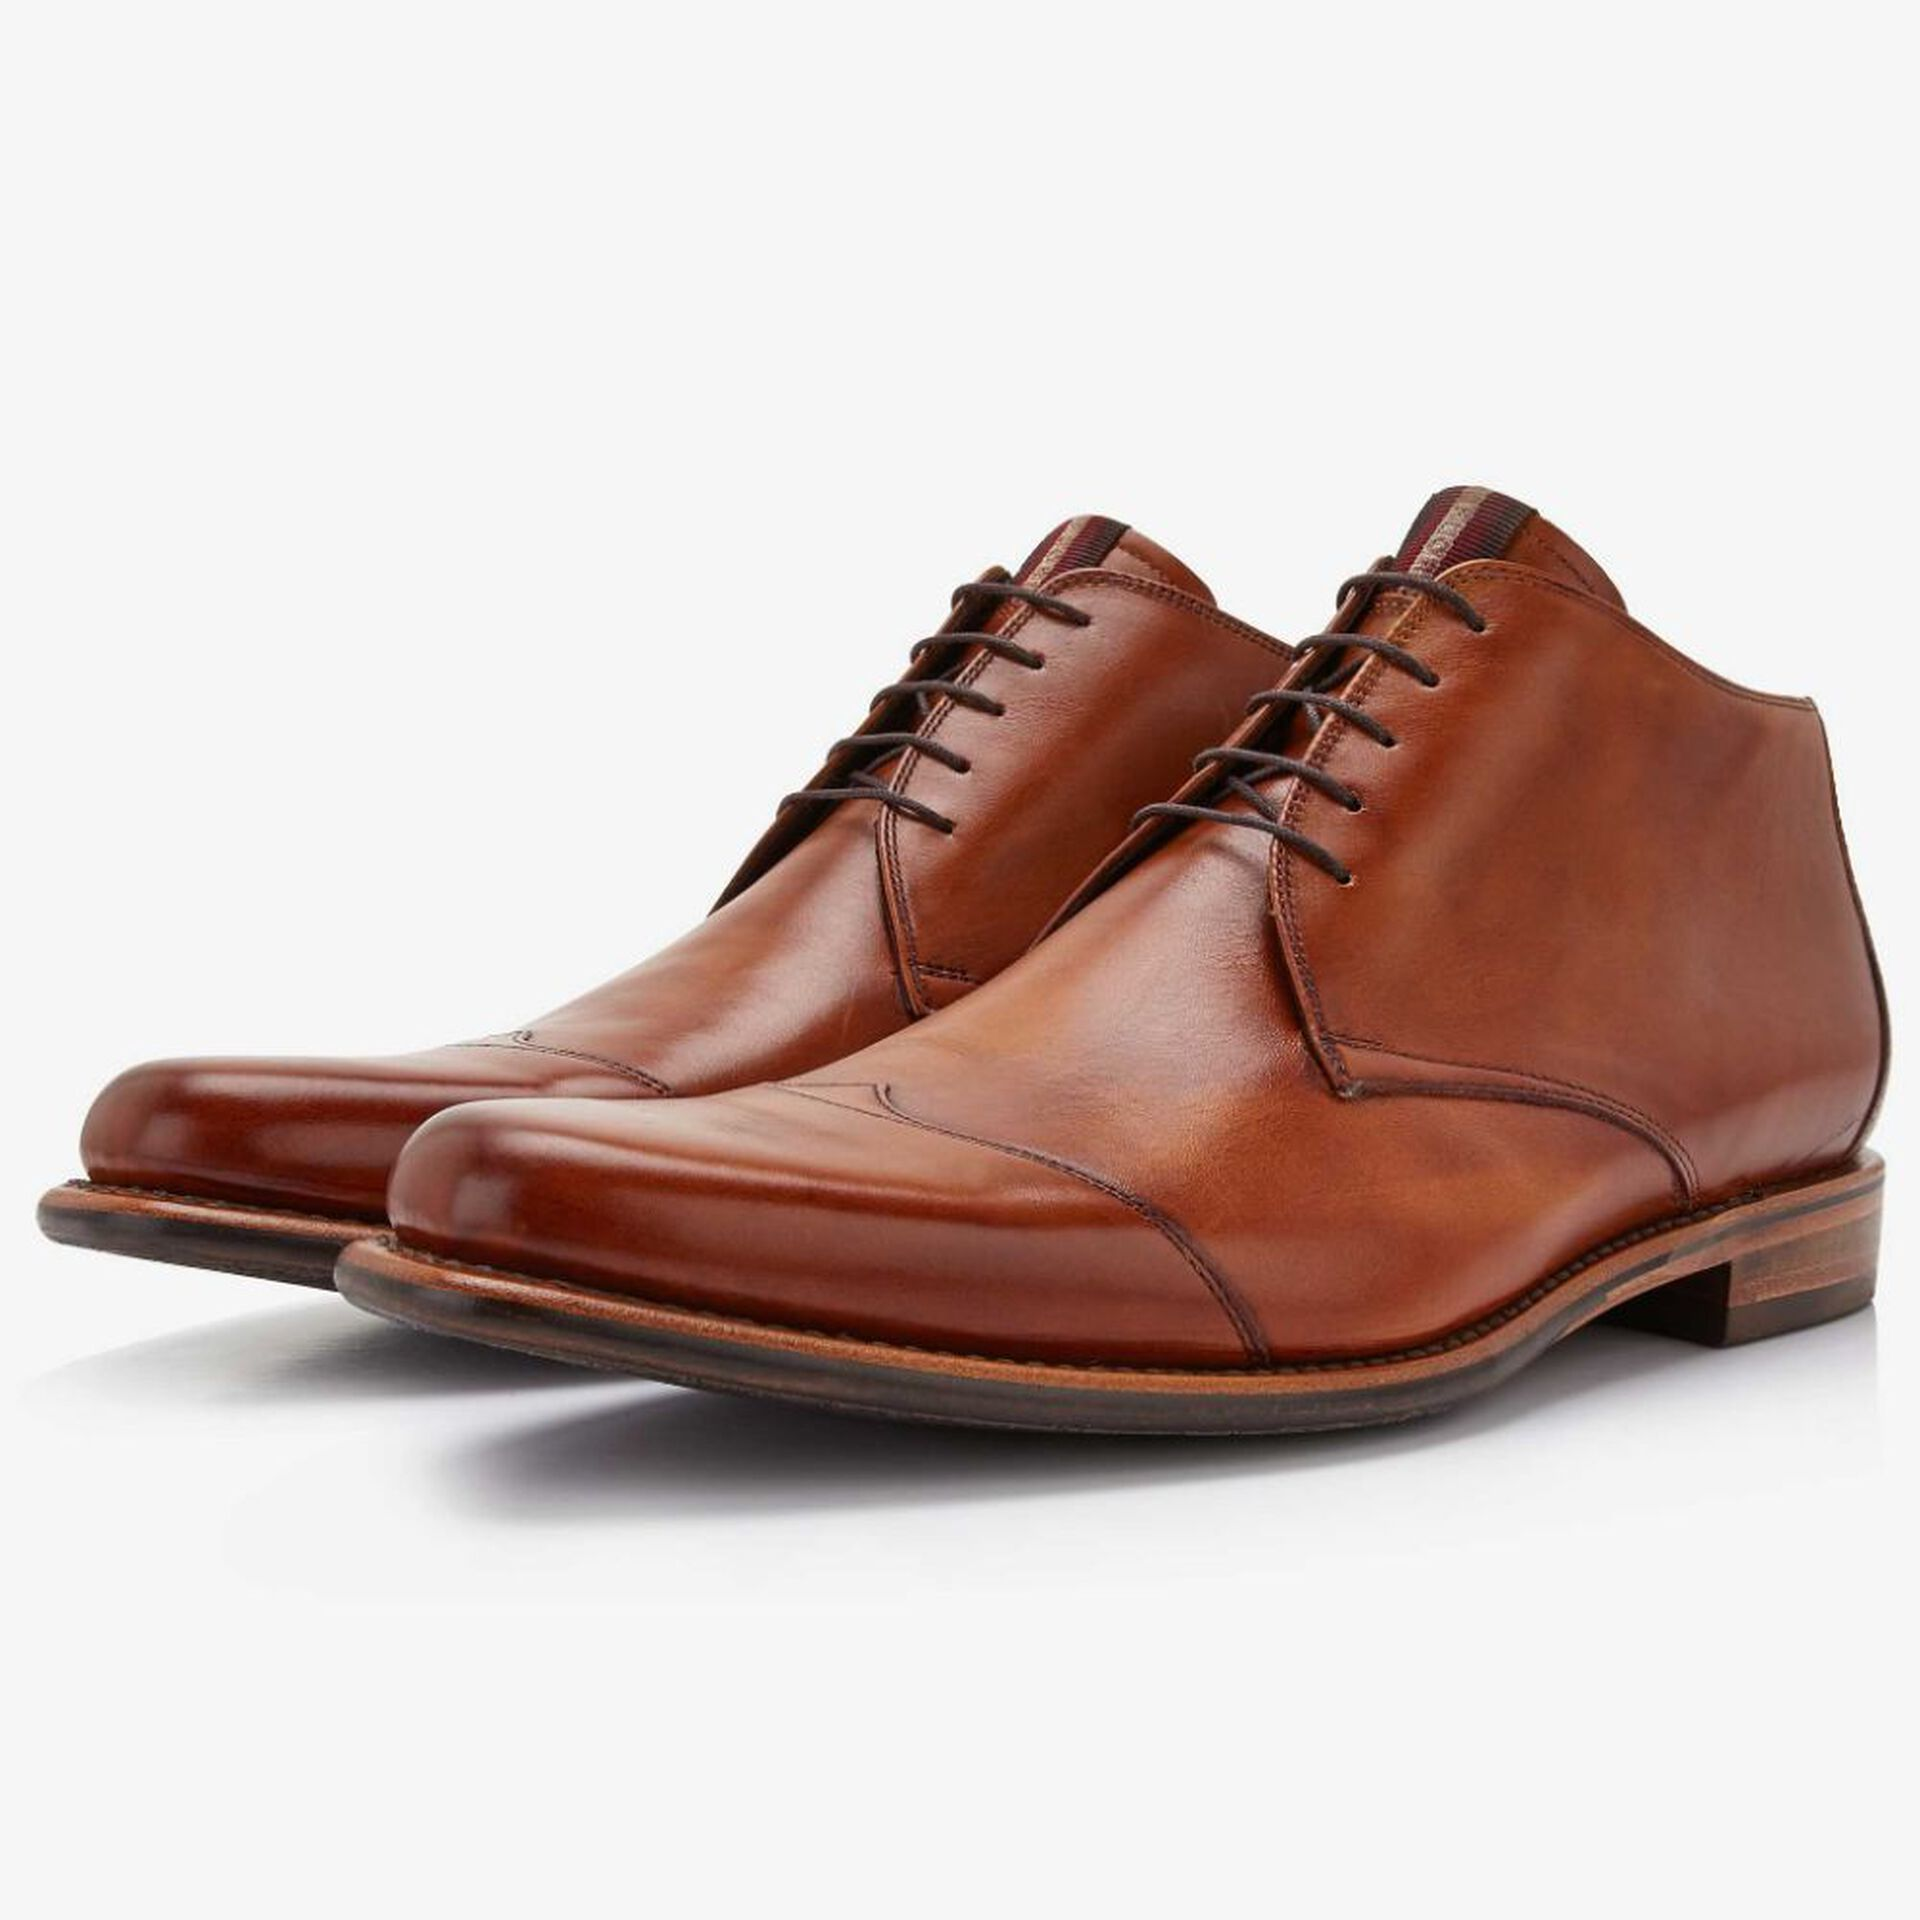 Floris van Bommel cognac coloured leather half-high men's lace-up boot